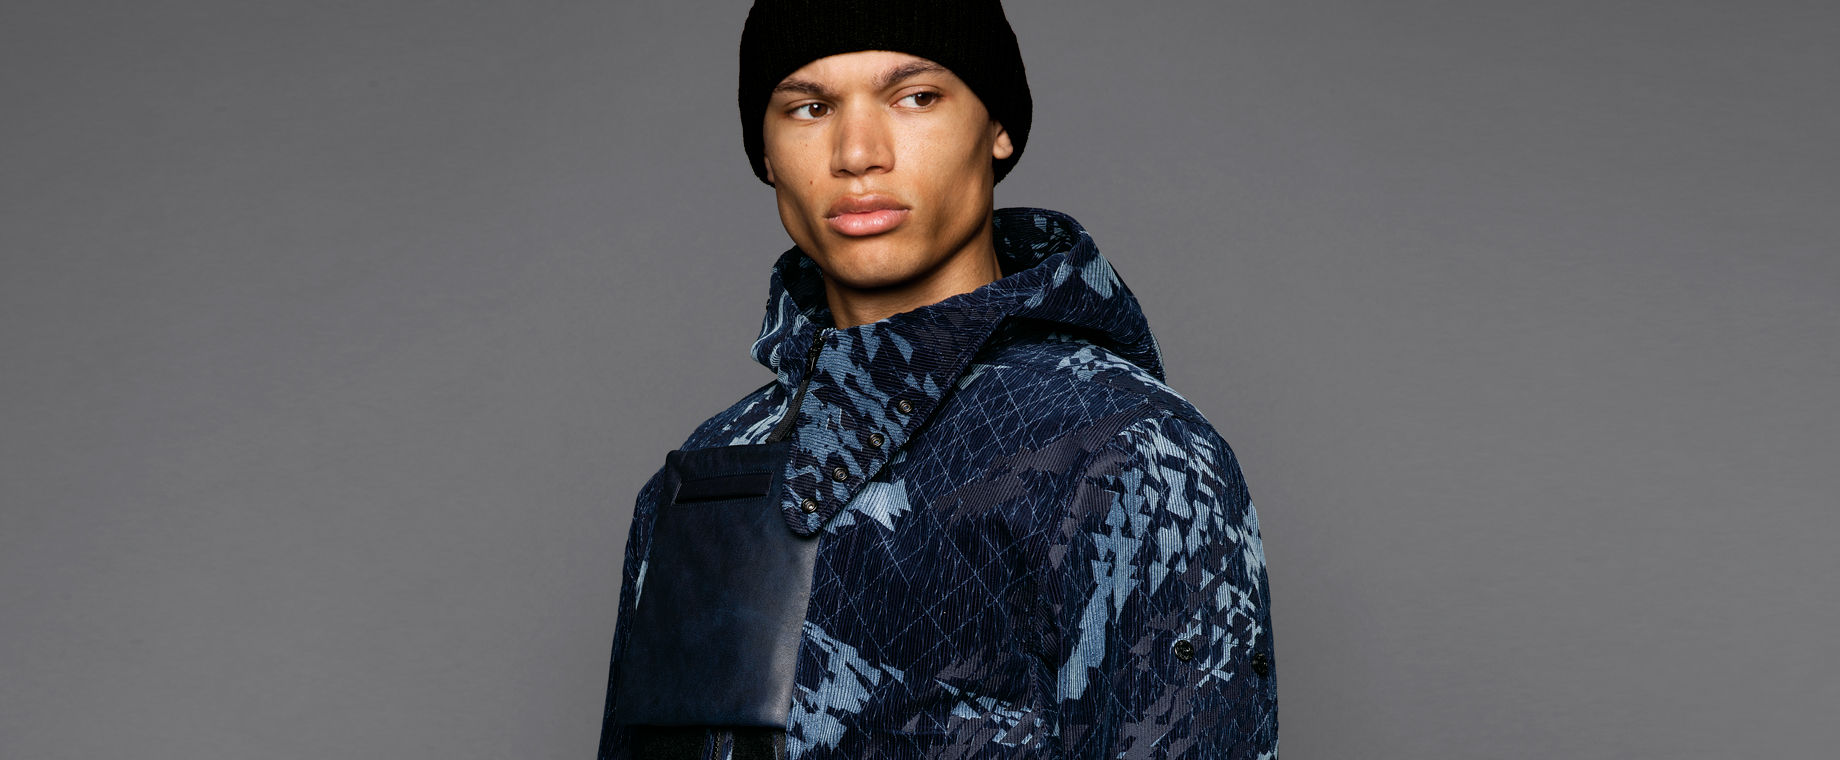 Cropped portrait of a model wearing short hooded jacket in an abstract pattern of dark and light blue hues with a square leather pocket on the chest